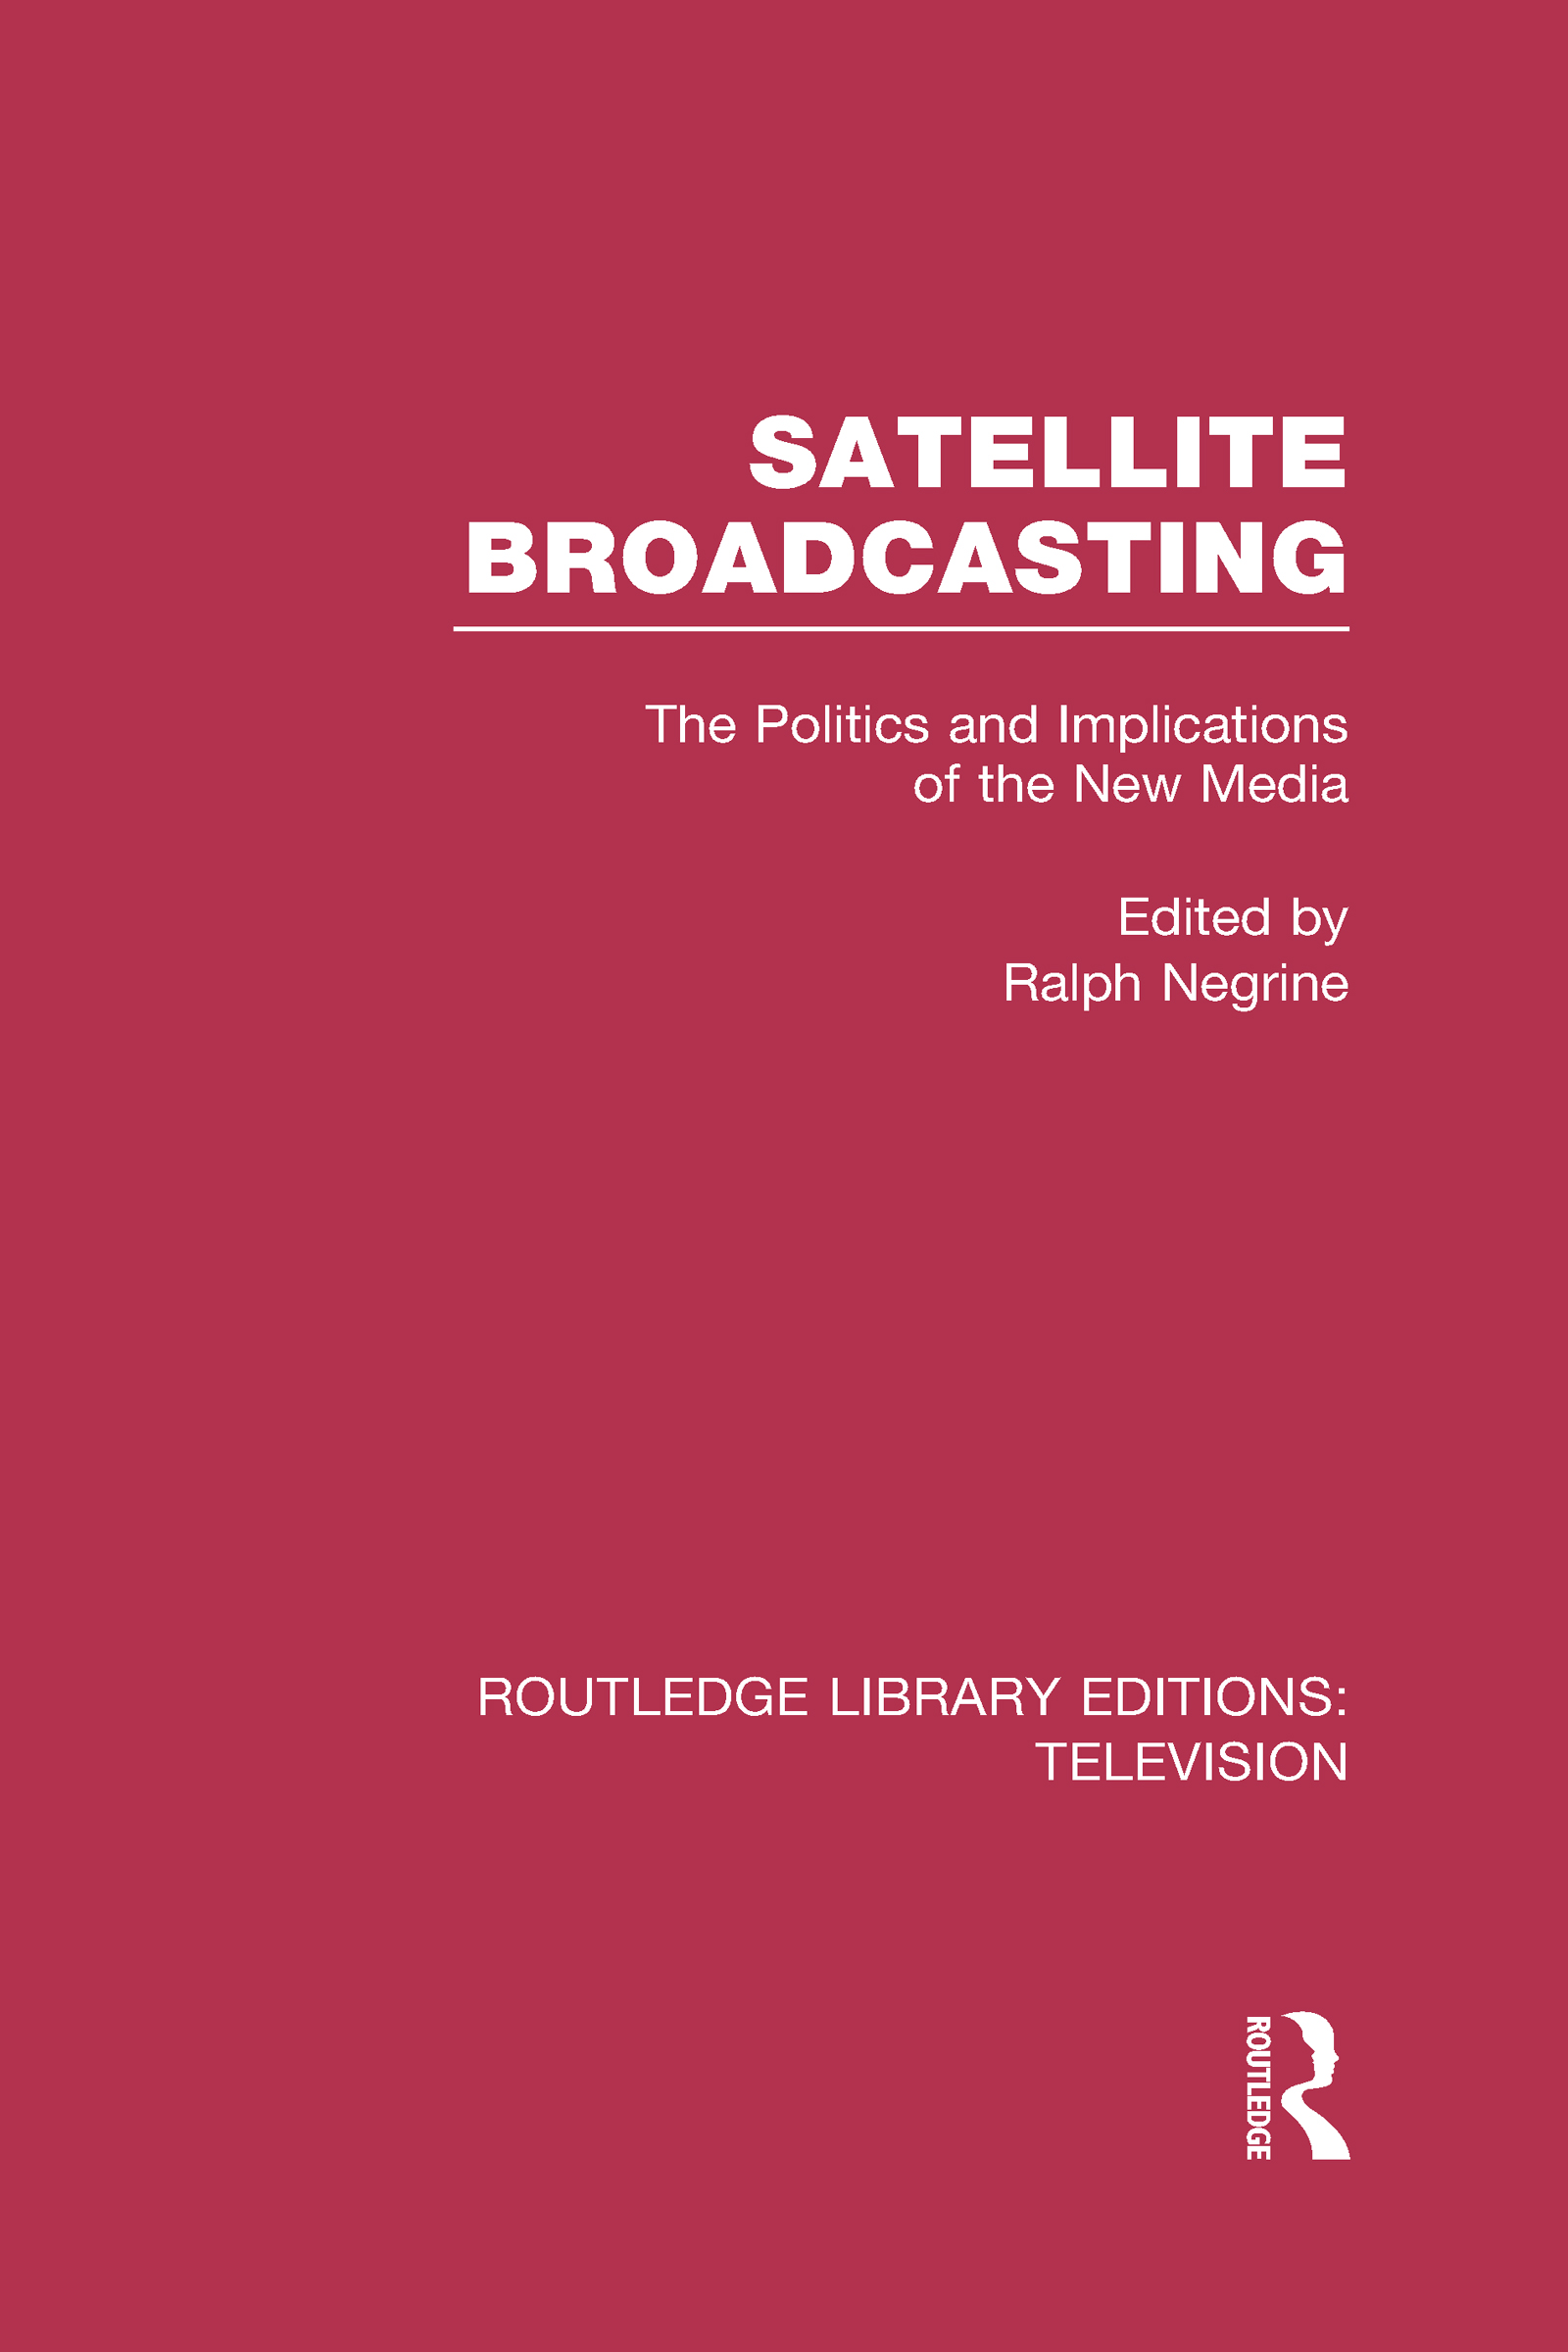 Satellite Broadcasting: The Politics and Implications of the New Media book cover